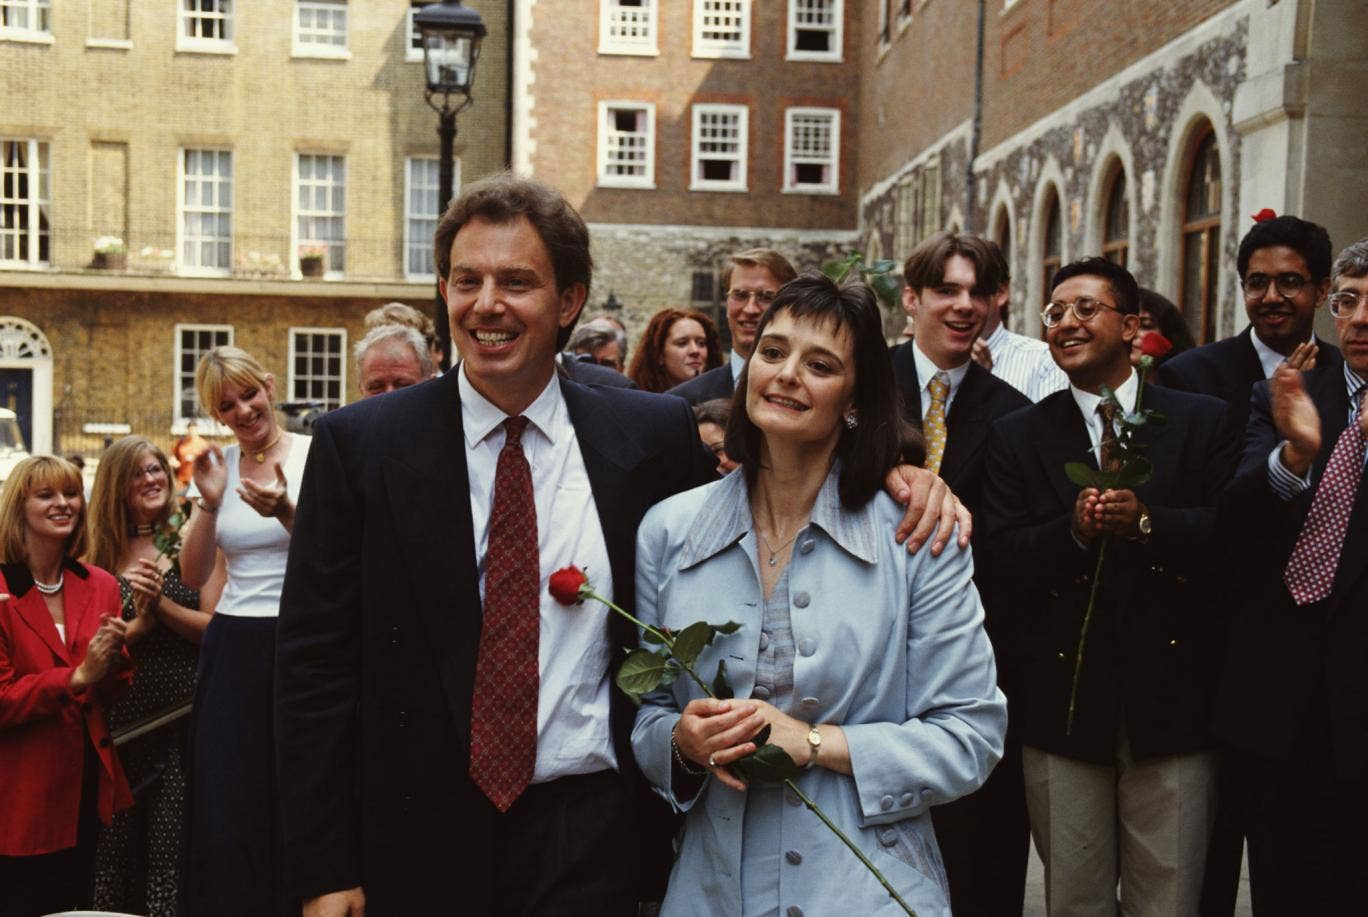 Tony Blair beat Margaret Beckett and who else in the 1994 Labour leadership election